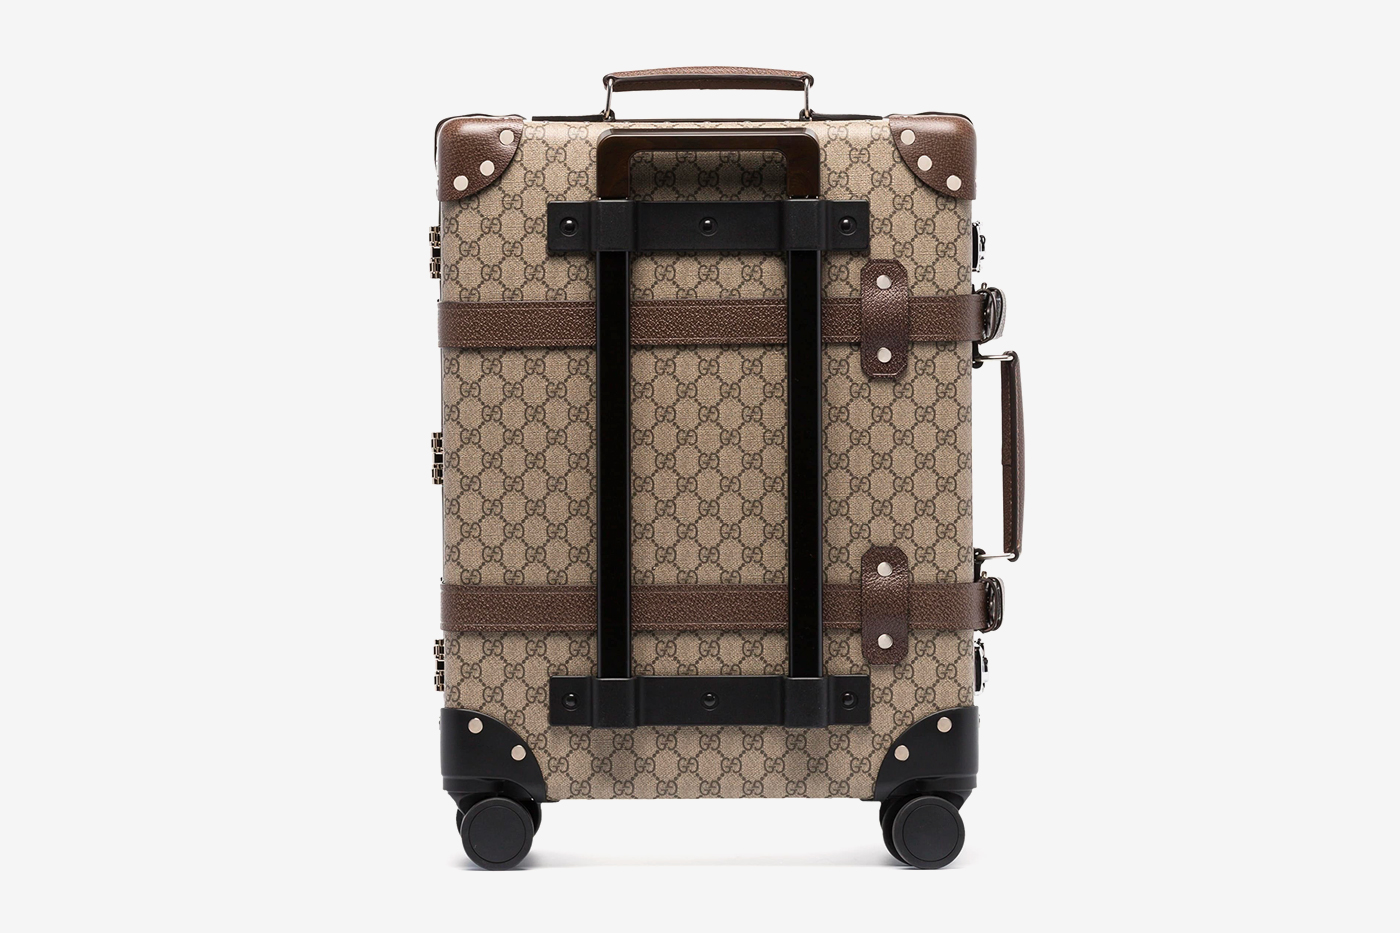 browns gucci globetrotter luggage suitcase leather cotton luxury fashion cyber monday black friday